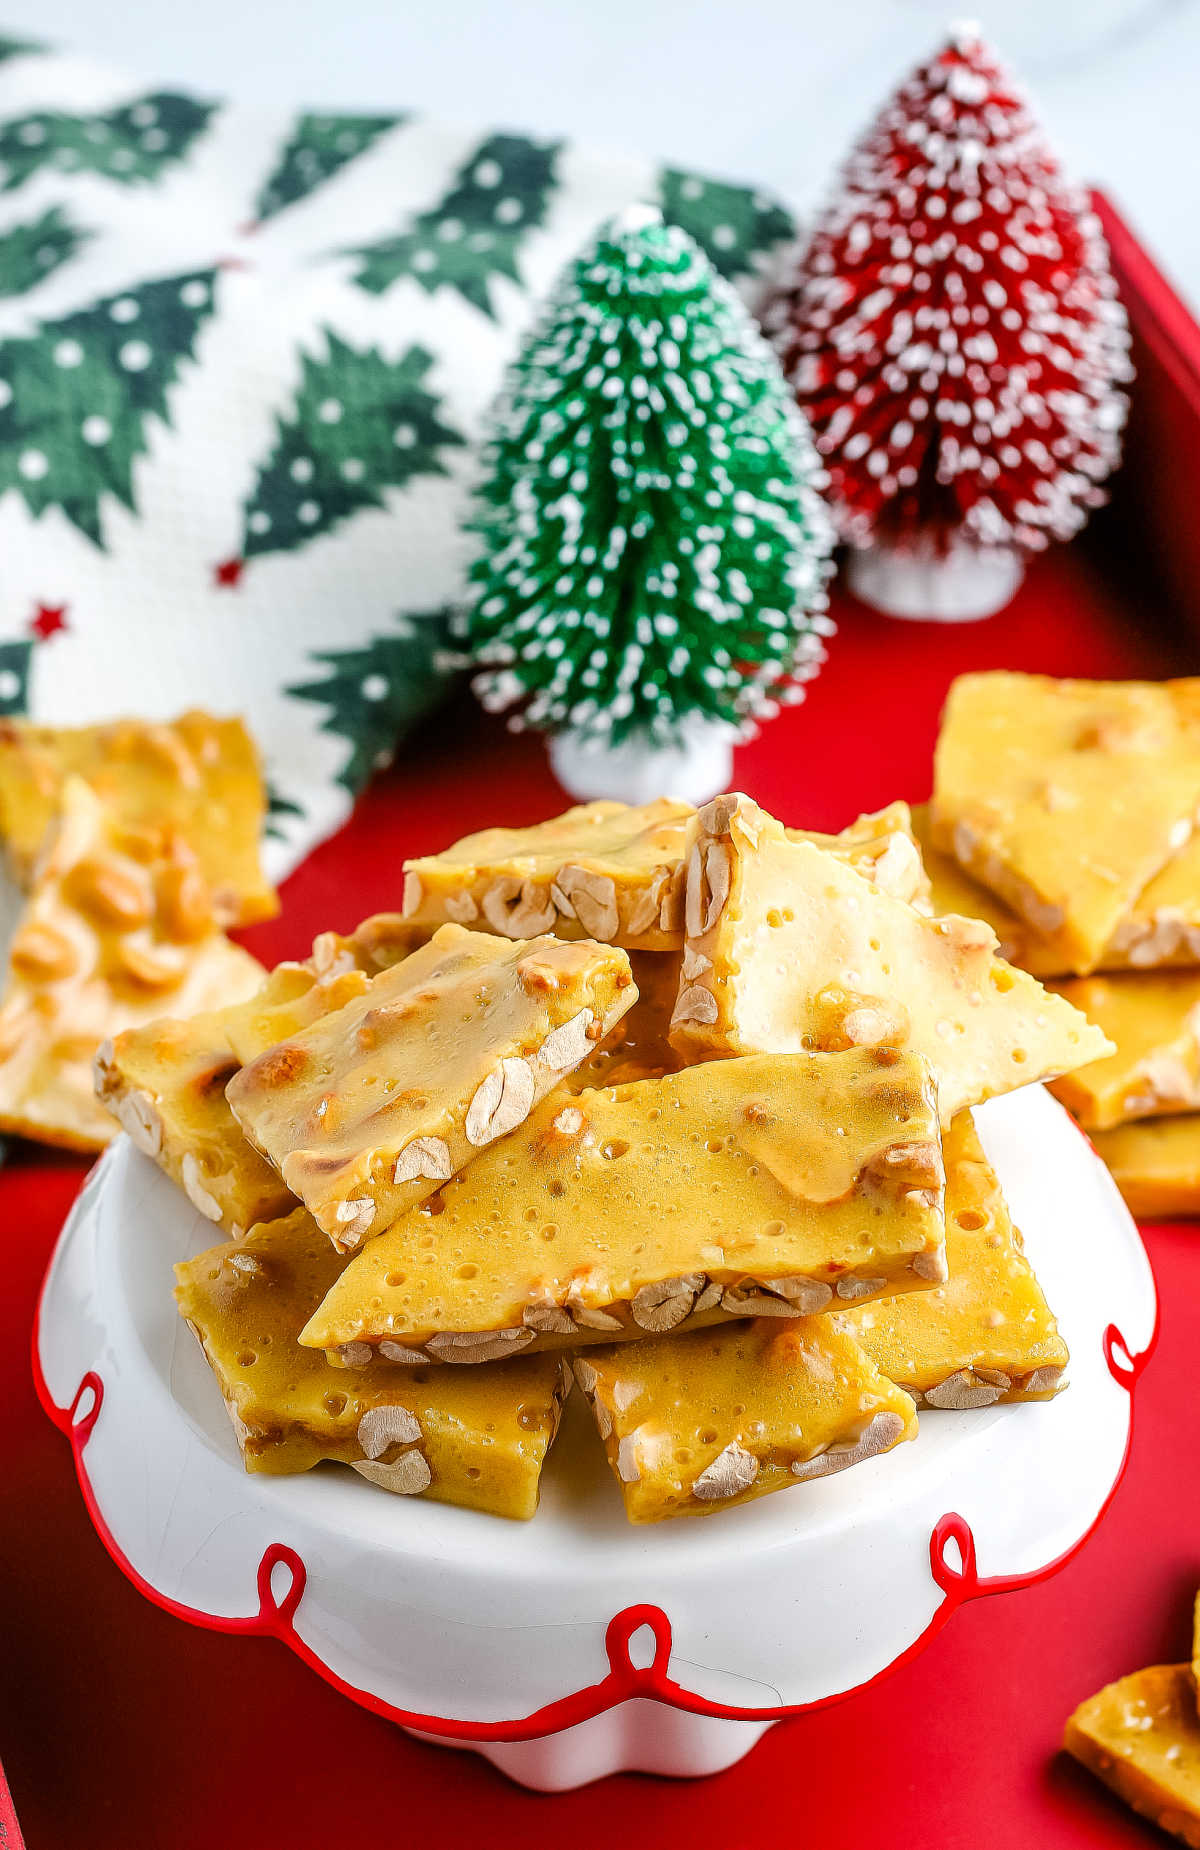 Homemade Peanut Brittle is a sweet, salty, and crunchy candy that is made on the stovetop. It's one of our favorite edible gifts to give during the holidays. via @easybudgetrecipes